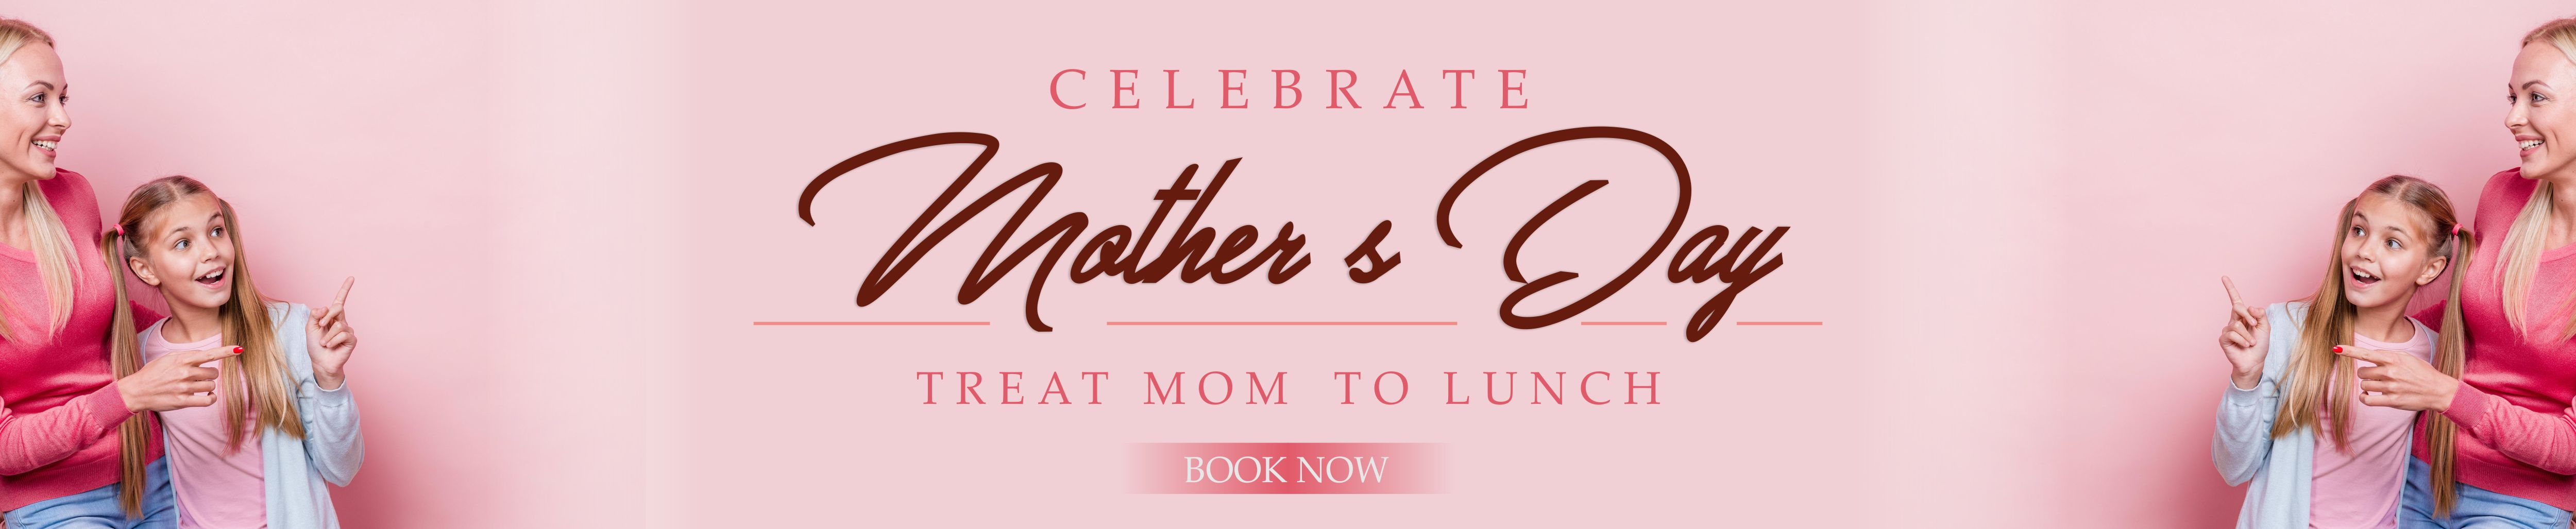 Misty Hills Country Hotel Mothers Day Specials Gauteng Muldersdrift restaurant venues